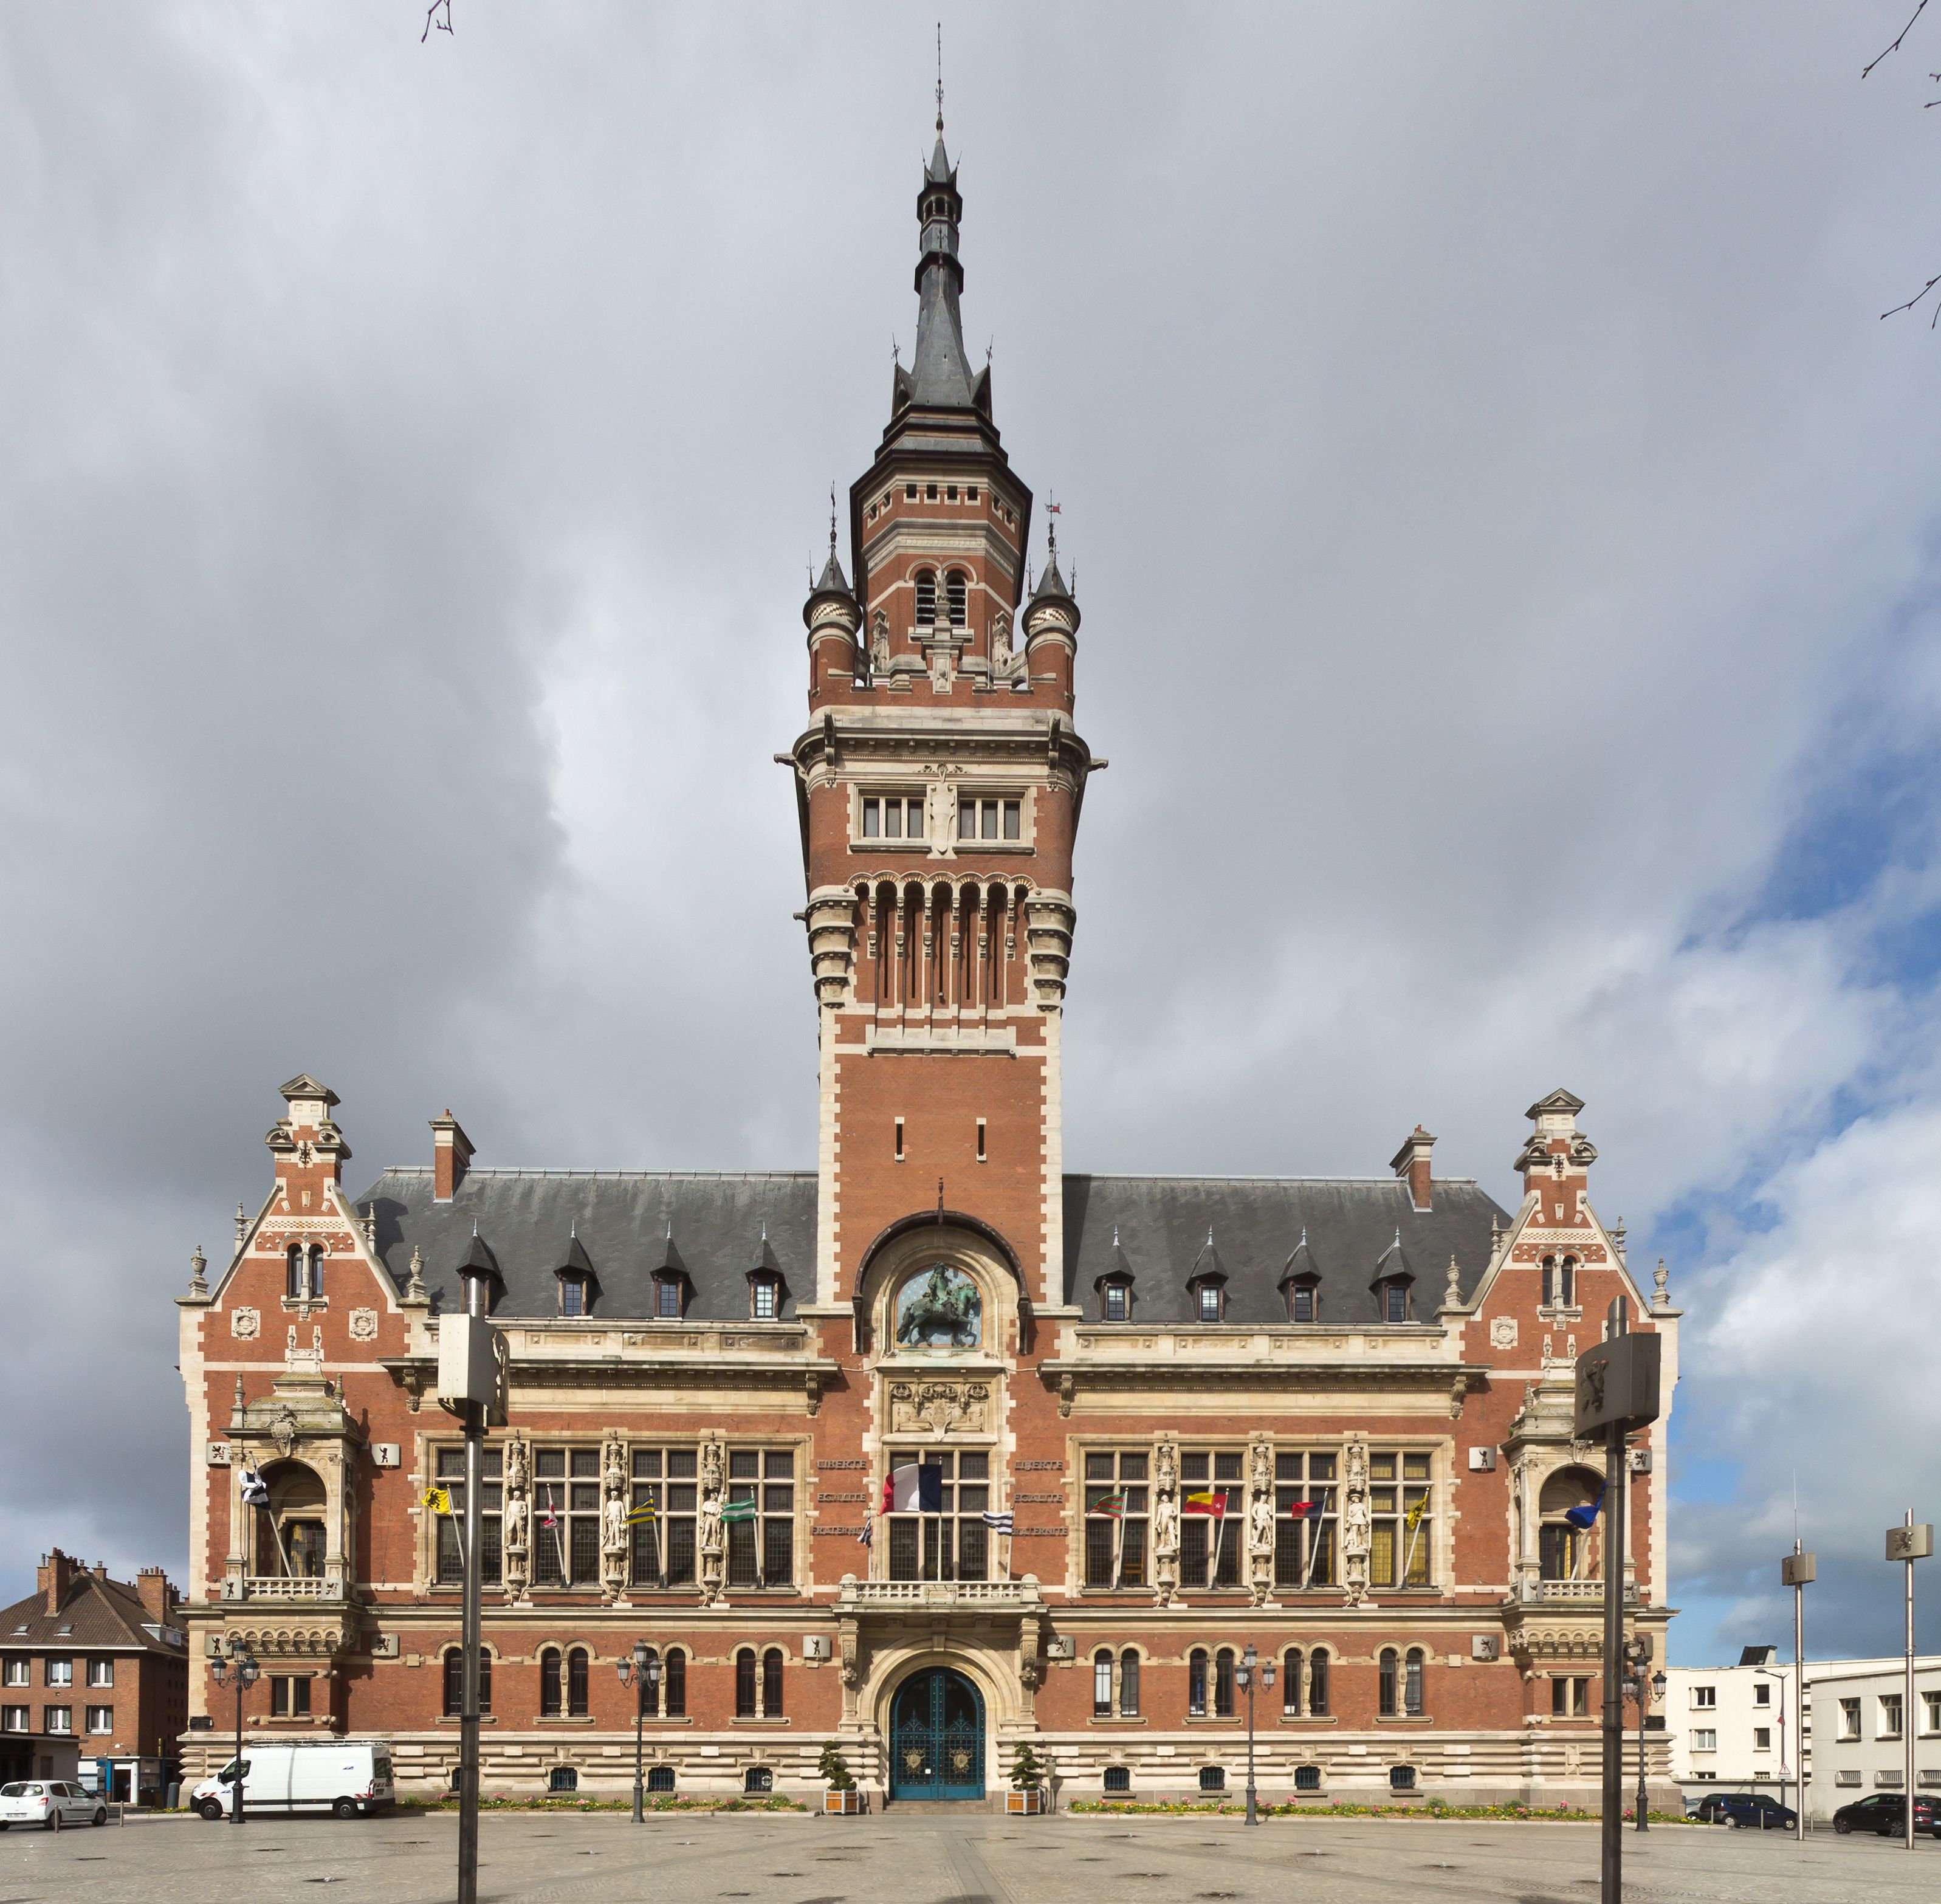 Architecture The City Hall In Dunkirk France 3194x3133